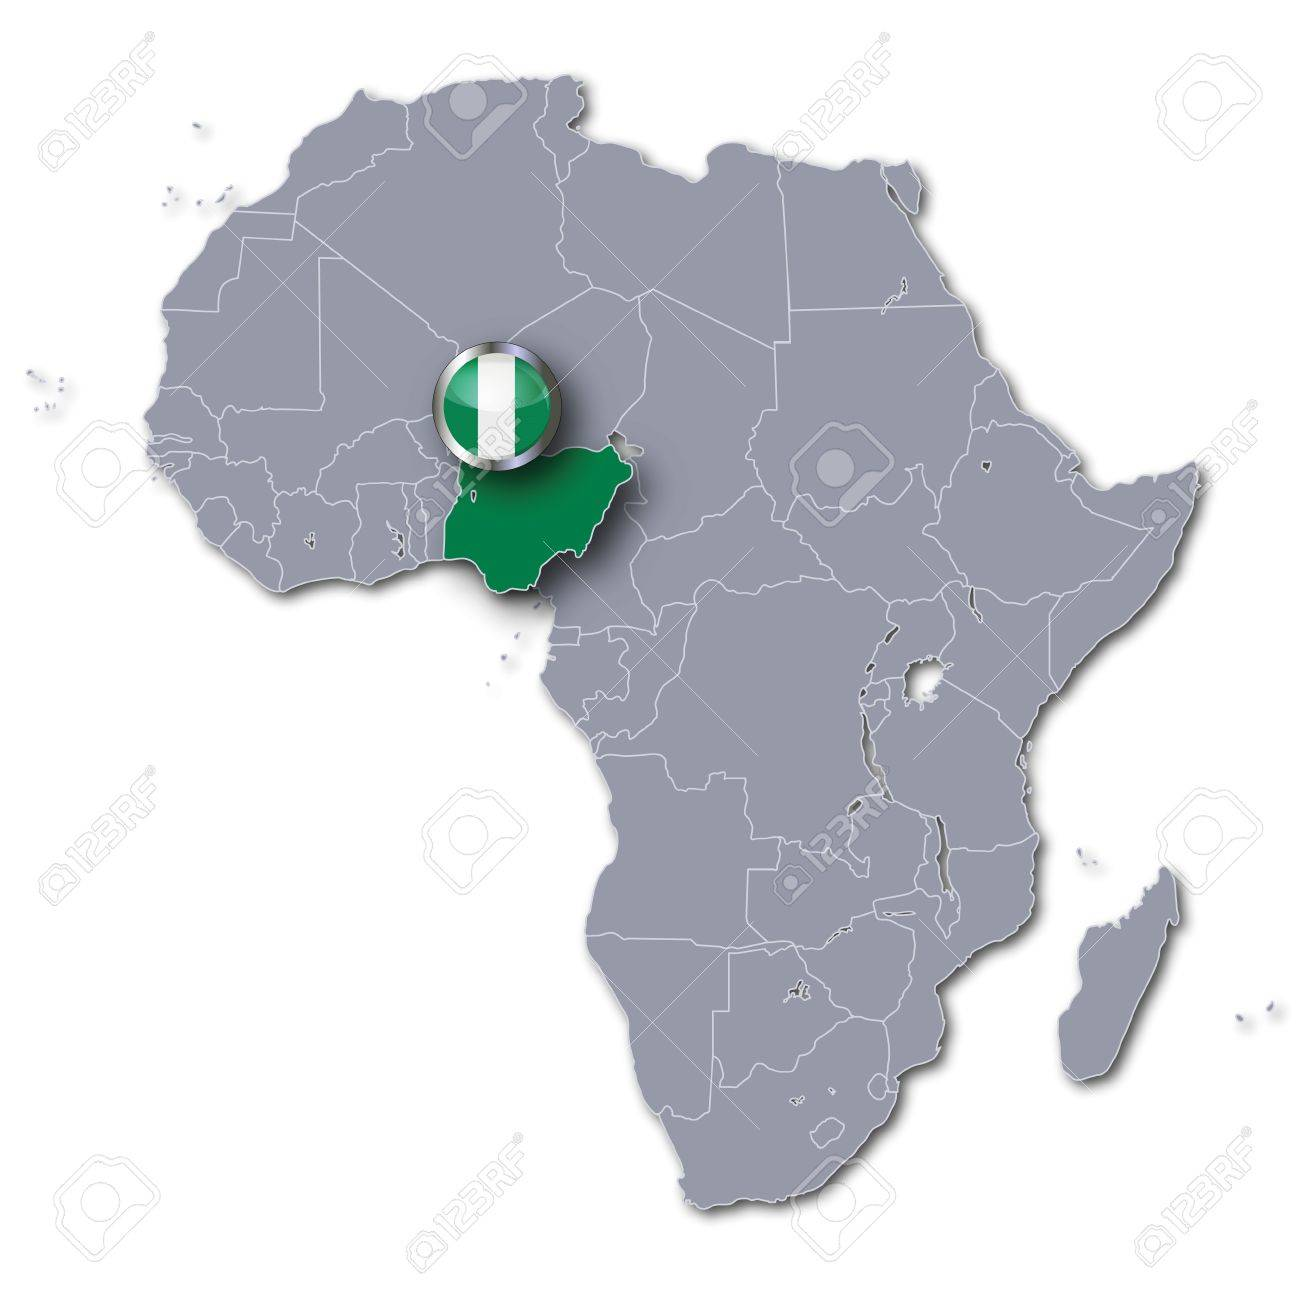 Africa Map Nigeria.Africa Map Nigeria Stock Photo Picture And Royalty Free Image